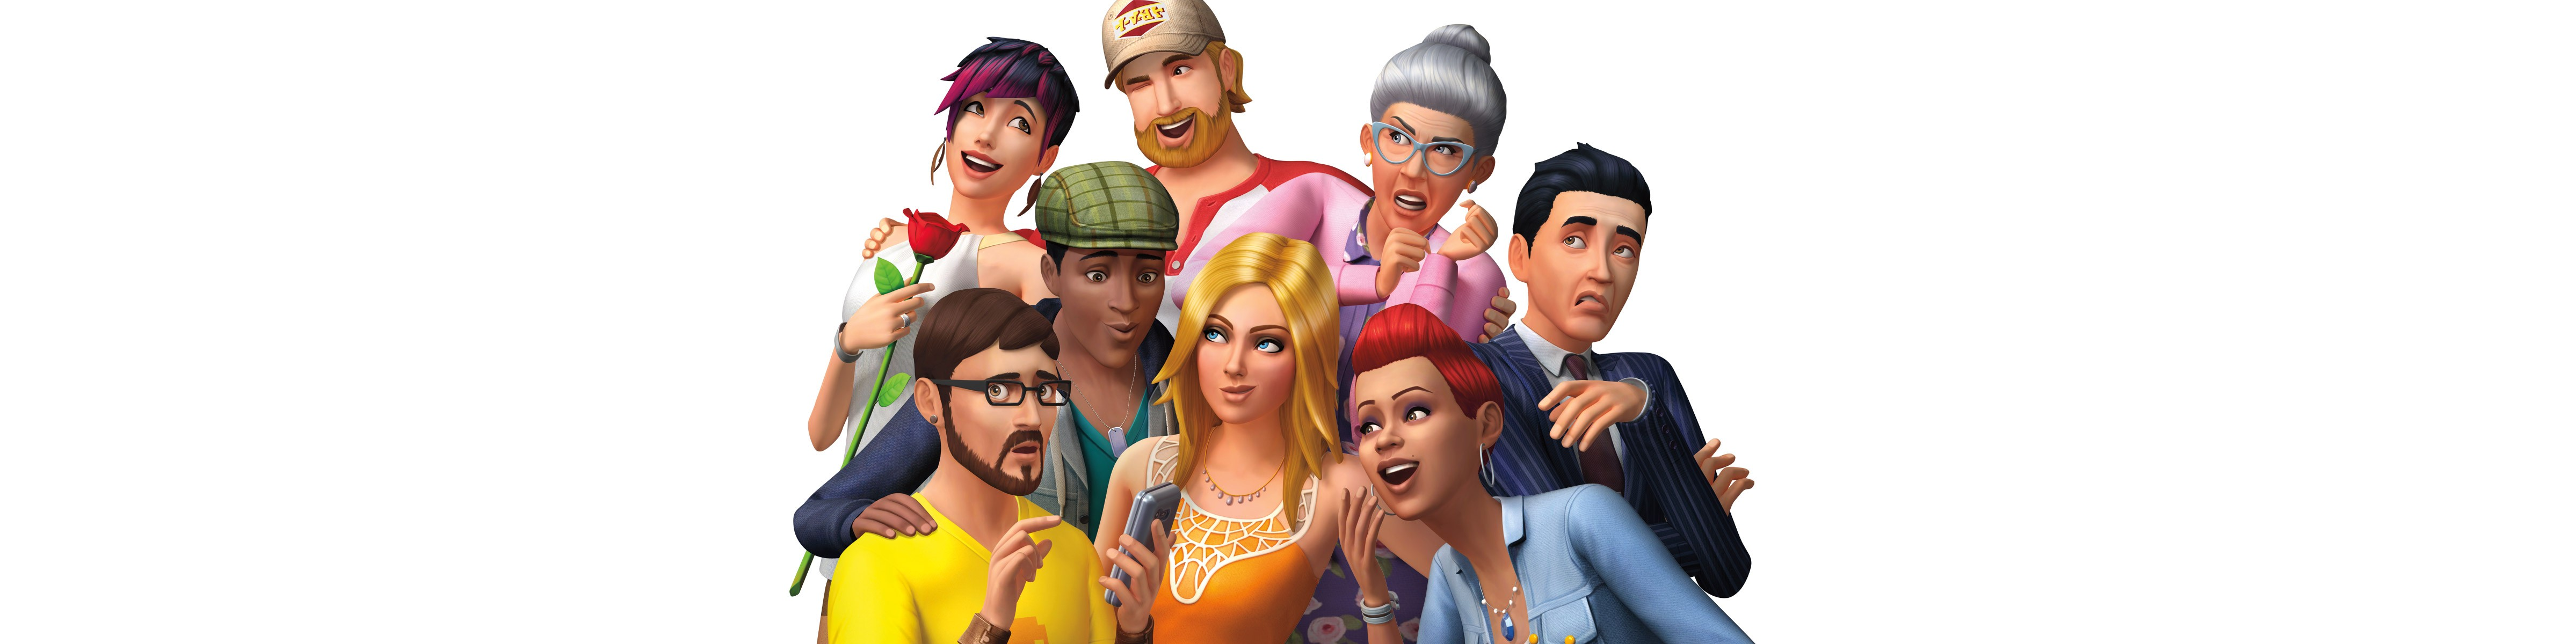 sims 4 download free full version windows 7